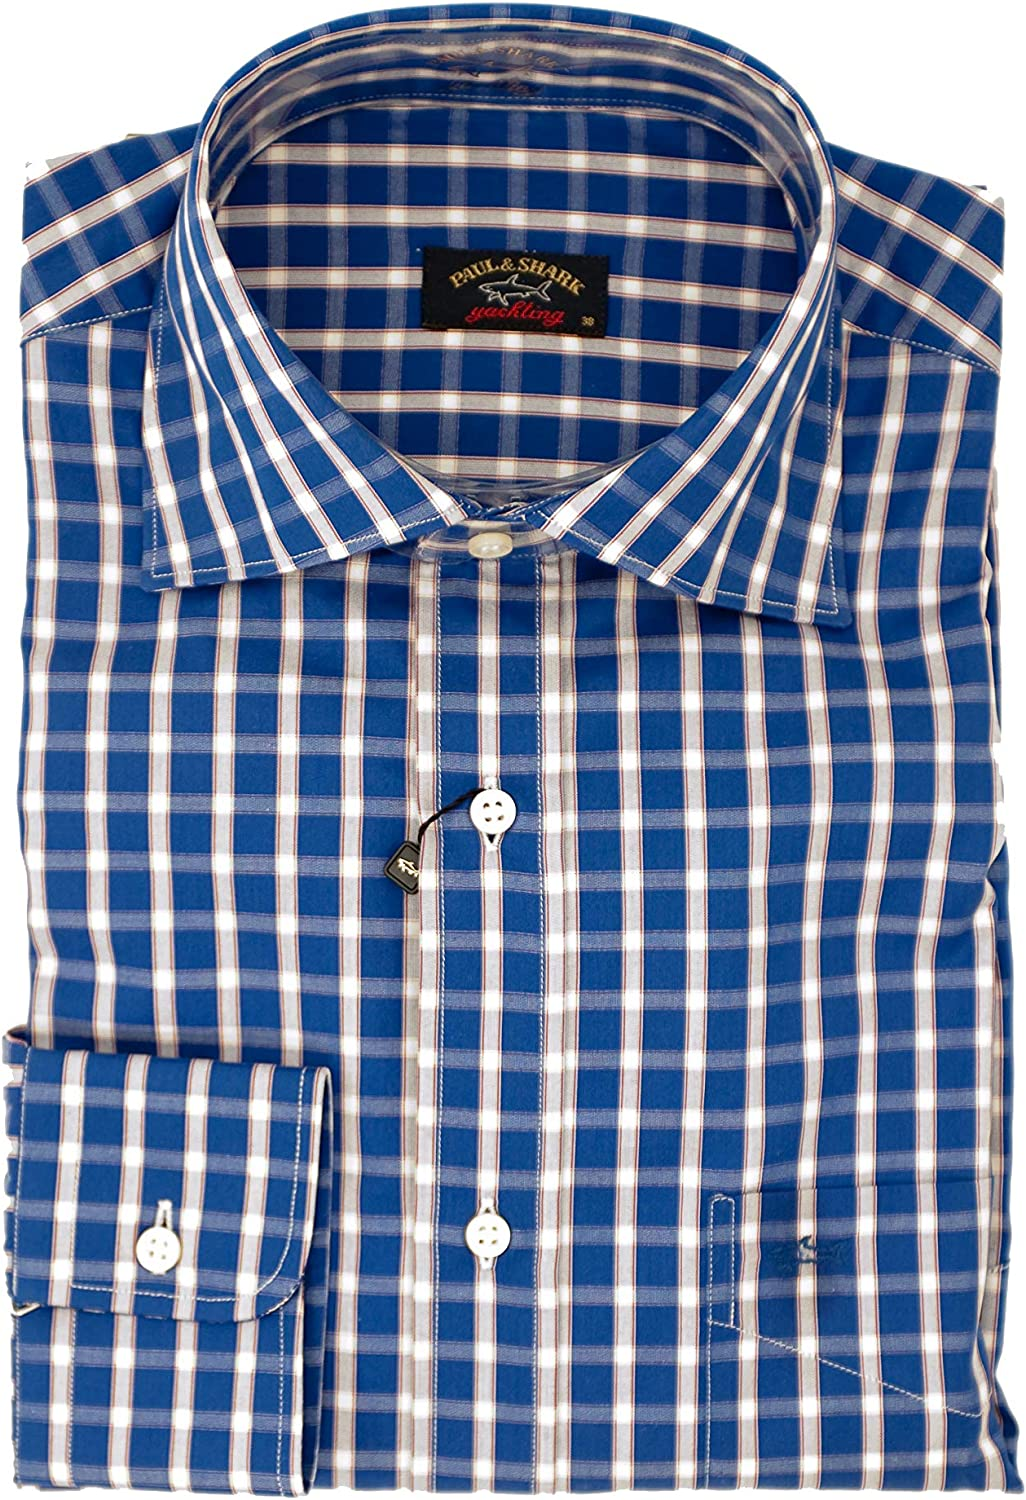 PAUL & SHARK Camisa Regular Fit BLU A Quadri 38: Amazon.es: Ropa y accesorios